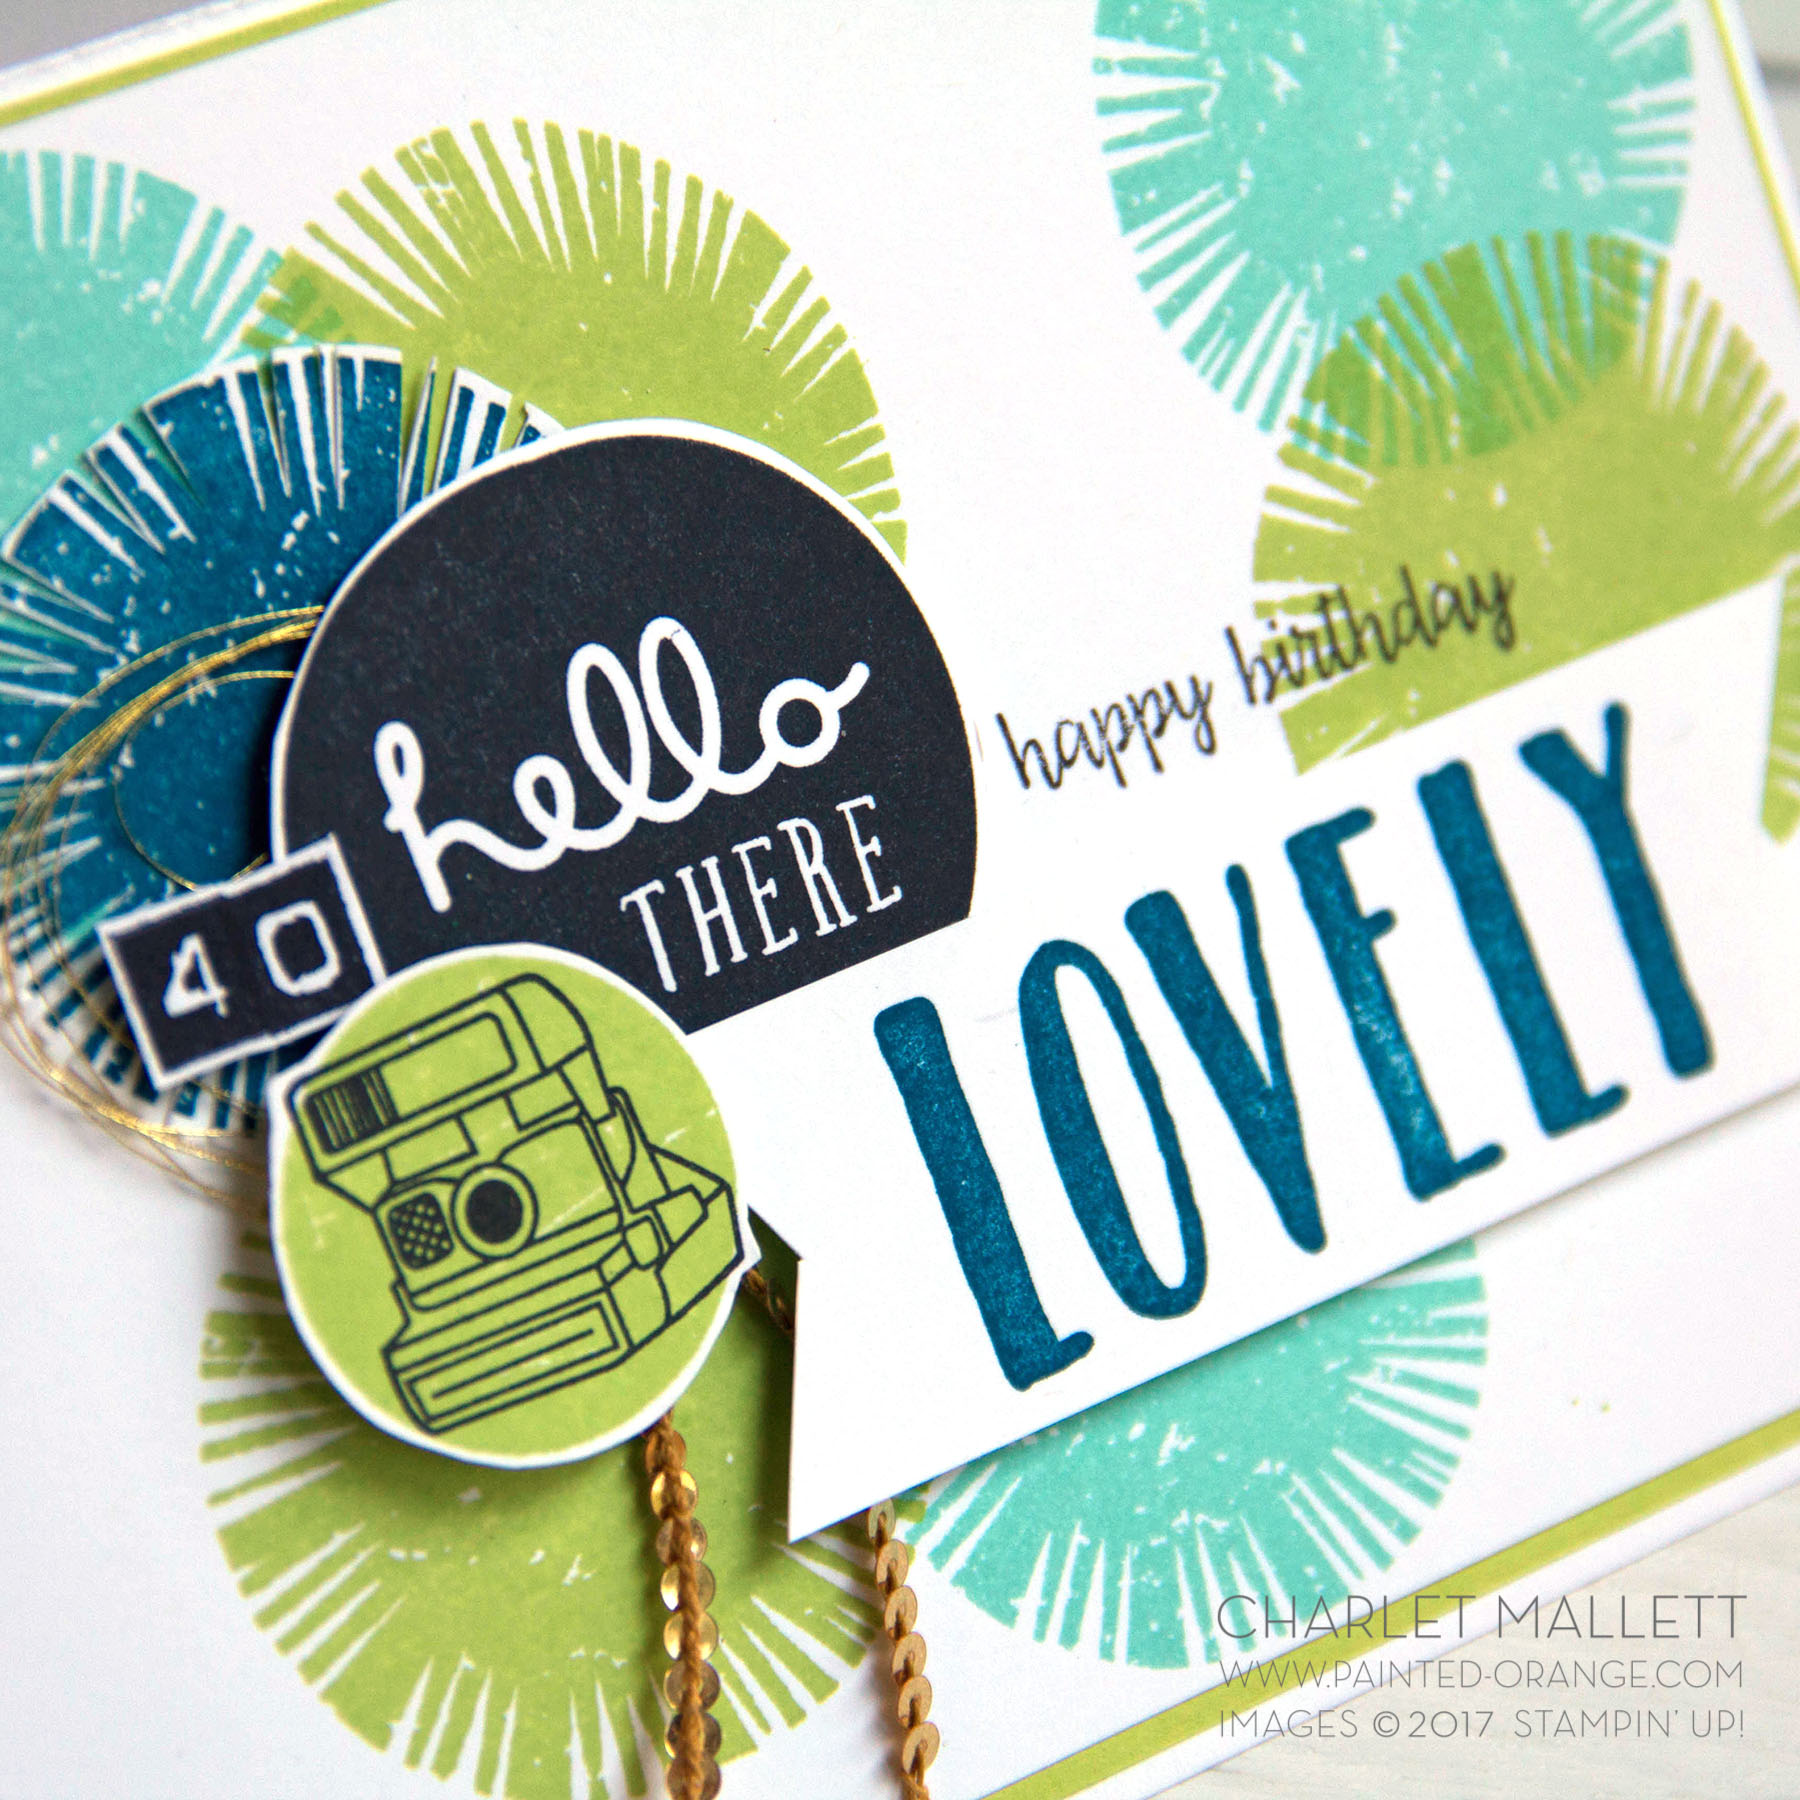 40th Birthday card using Oh So Lovely and Happy Birthday Gorgeous. Charlet Mallett